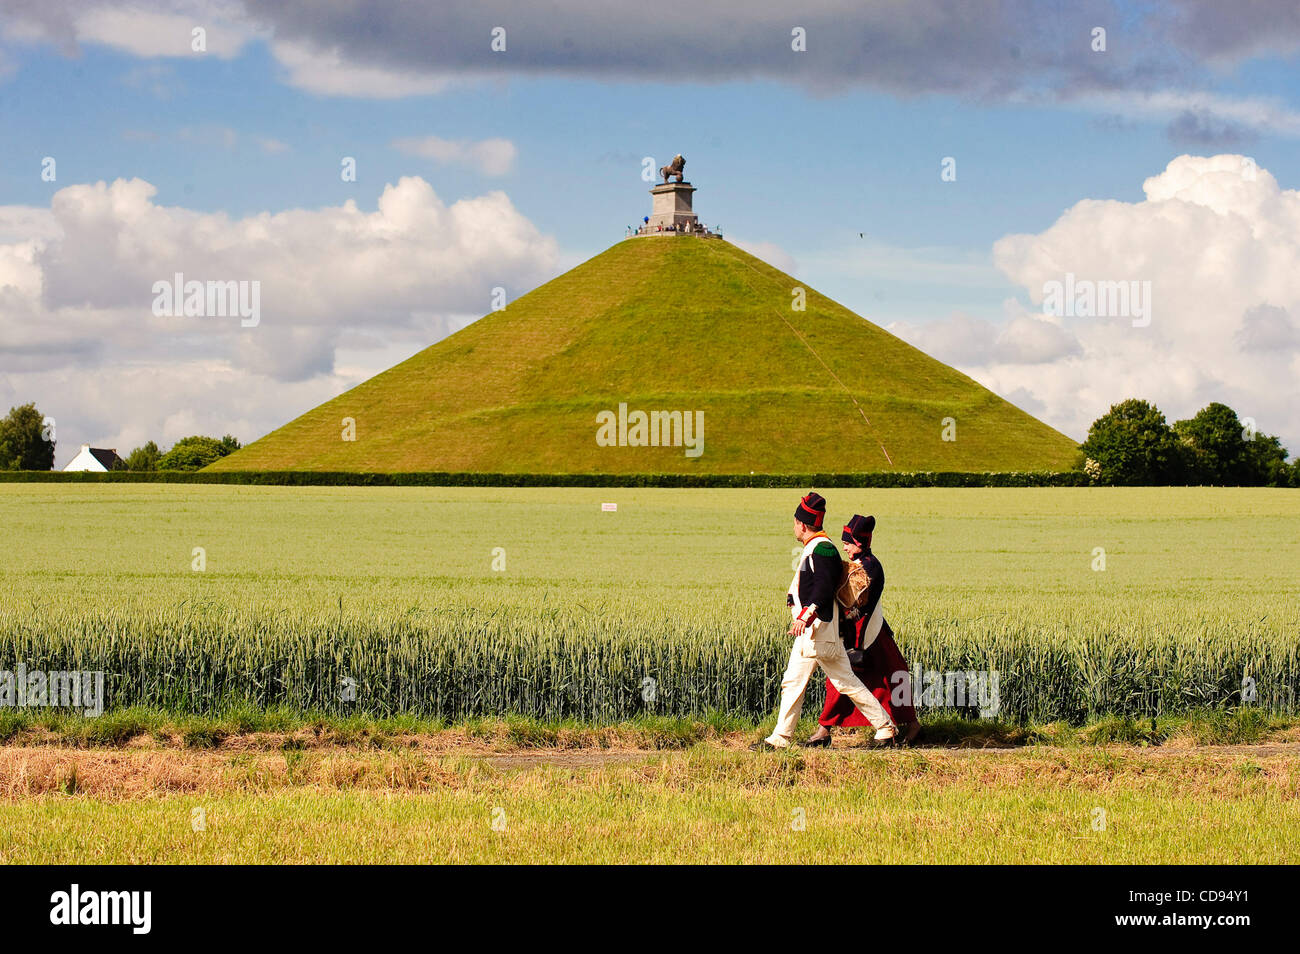 June 19, 2010 - Brussels, BXL, Belgium - Couple dressed up  during re-enactment of  the 1815 Battle of Waterloo - Stock Image